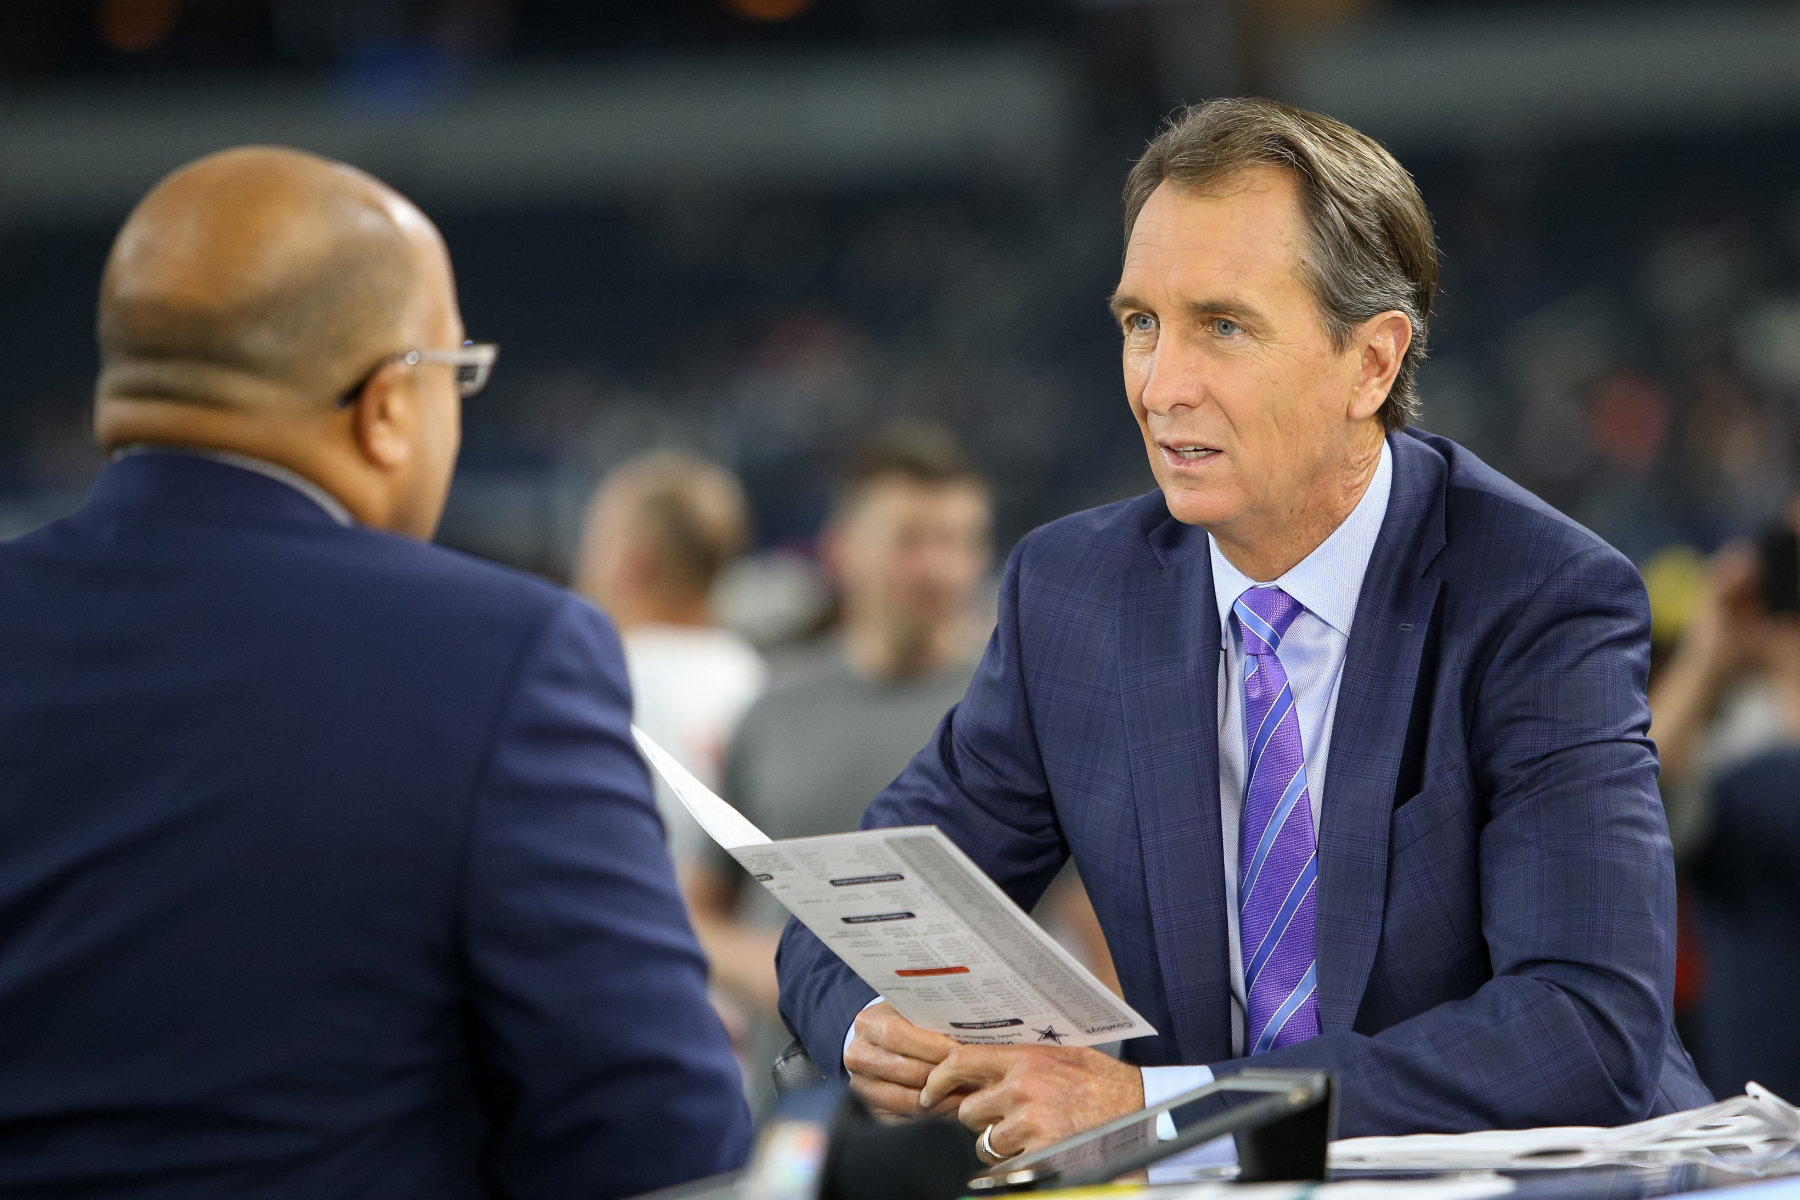 Cris Collinsworth has made multiple controversial comments this season. Recently, he insulted the intelligence of football fans everywhere.